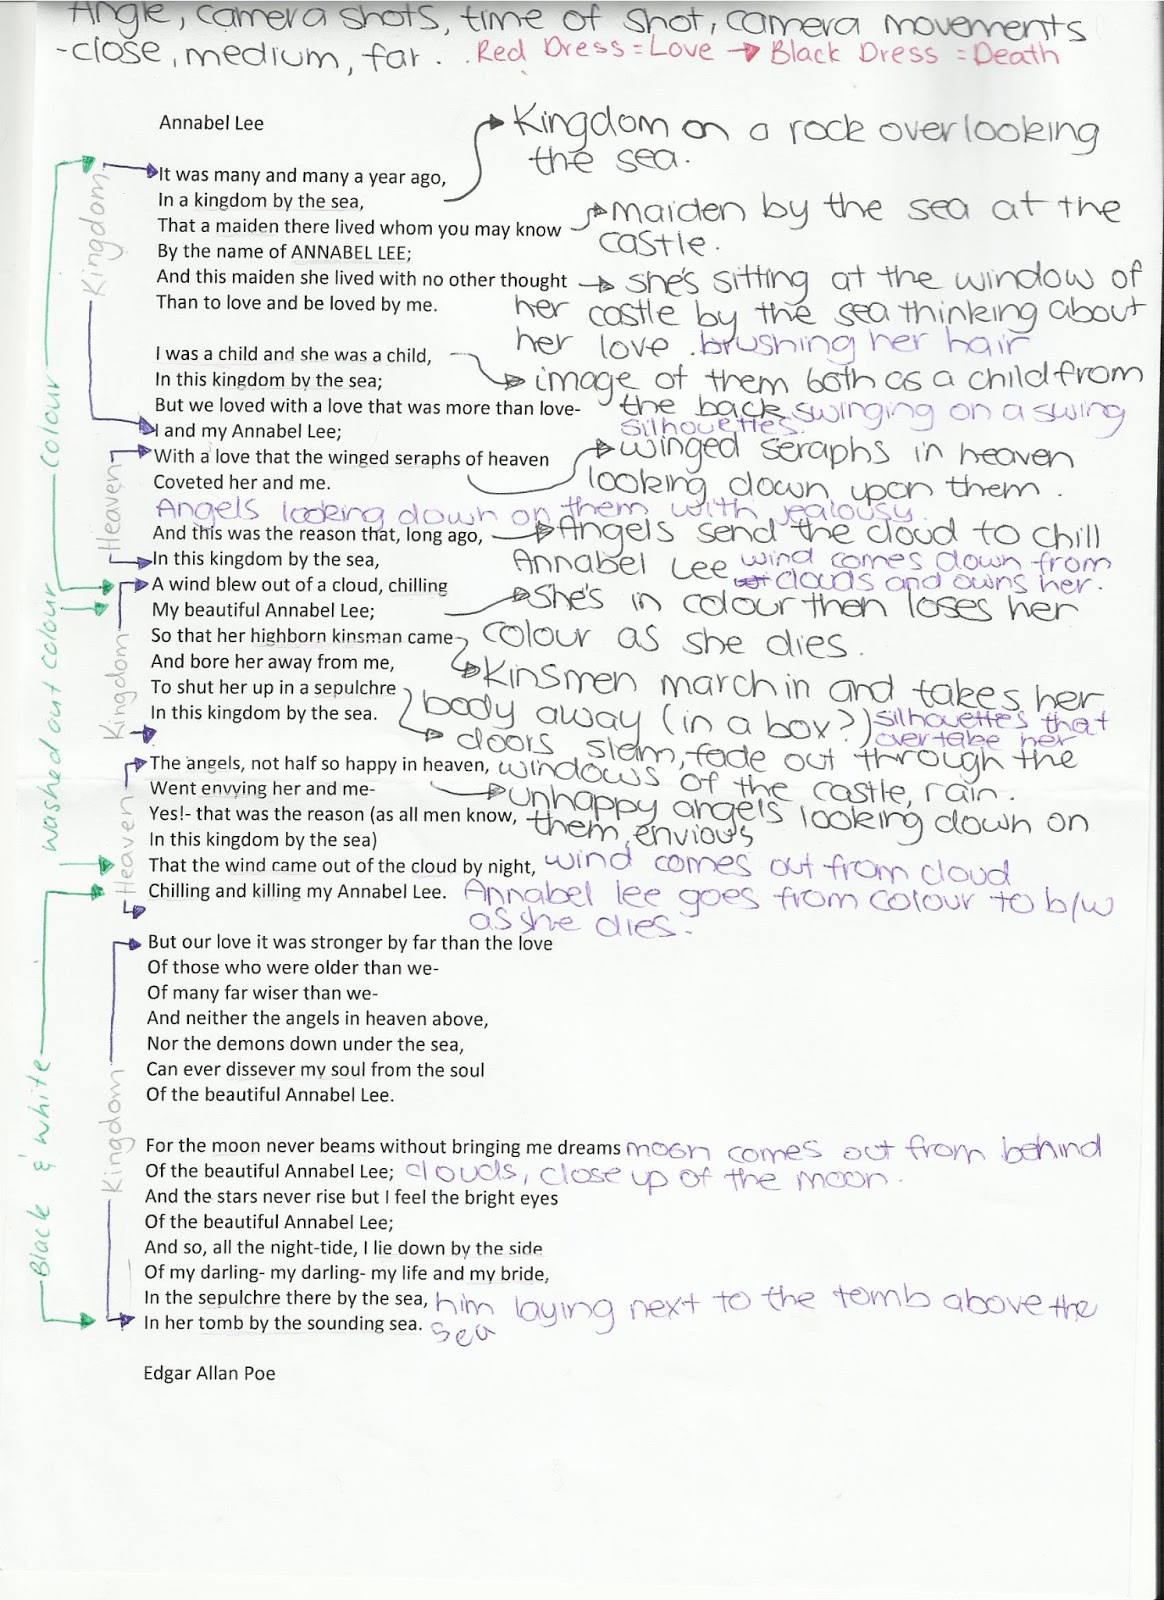 critical essay on annabel lee According to the speaker, why did annabel lee die write specific lines to support your answer - because the angels were jealous mini essay question: discuss similarities between edgar allan poe's life and him poem annabel lee help about.